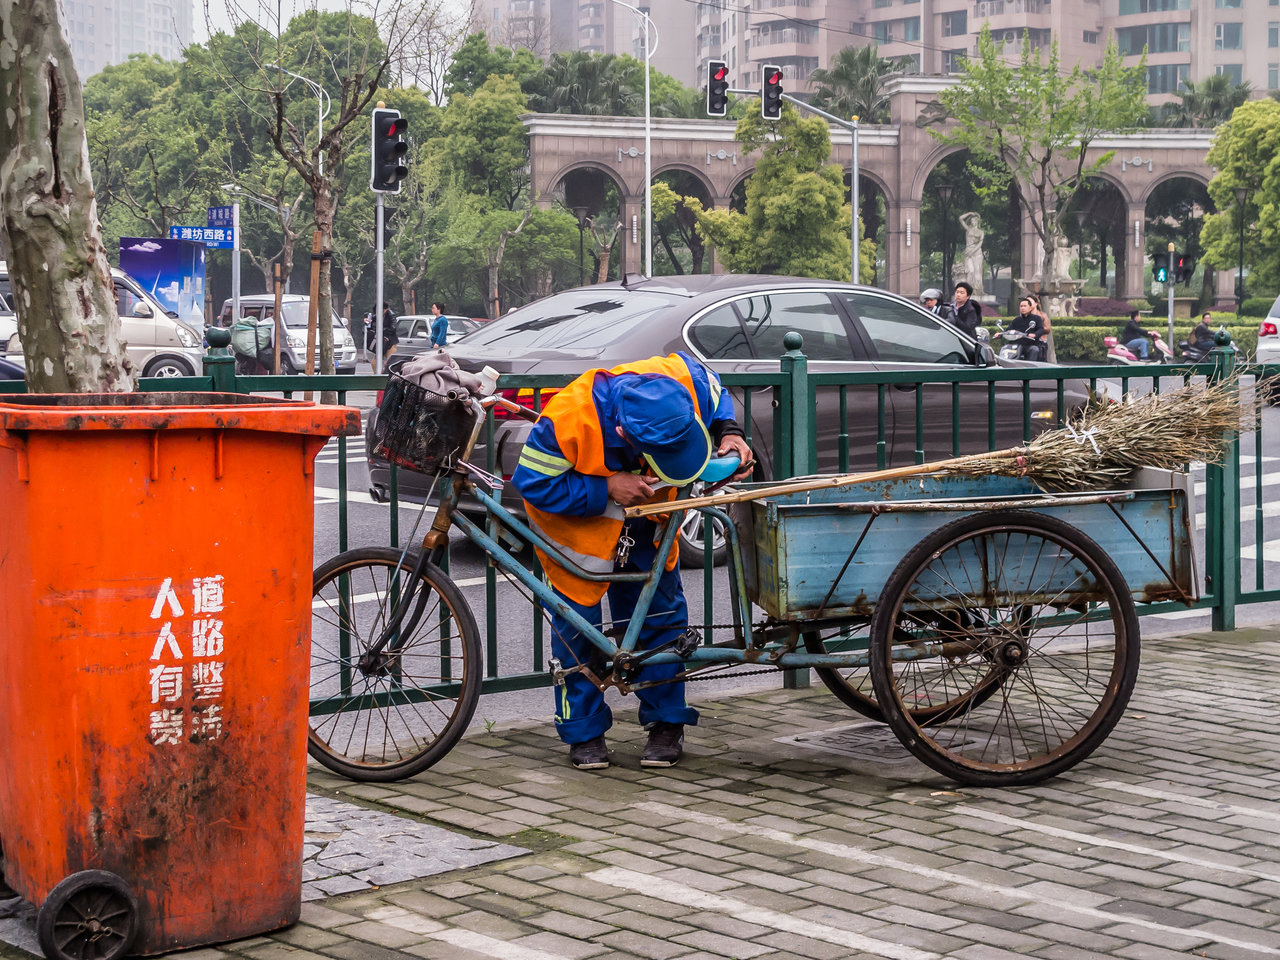 street cleaner inspecting his bike in china